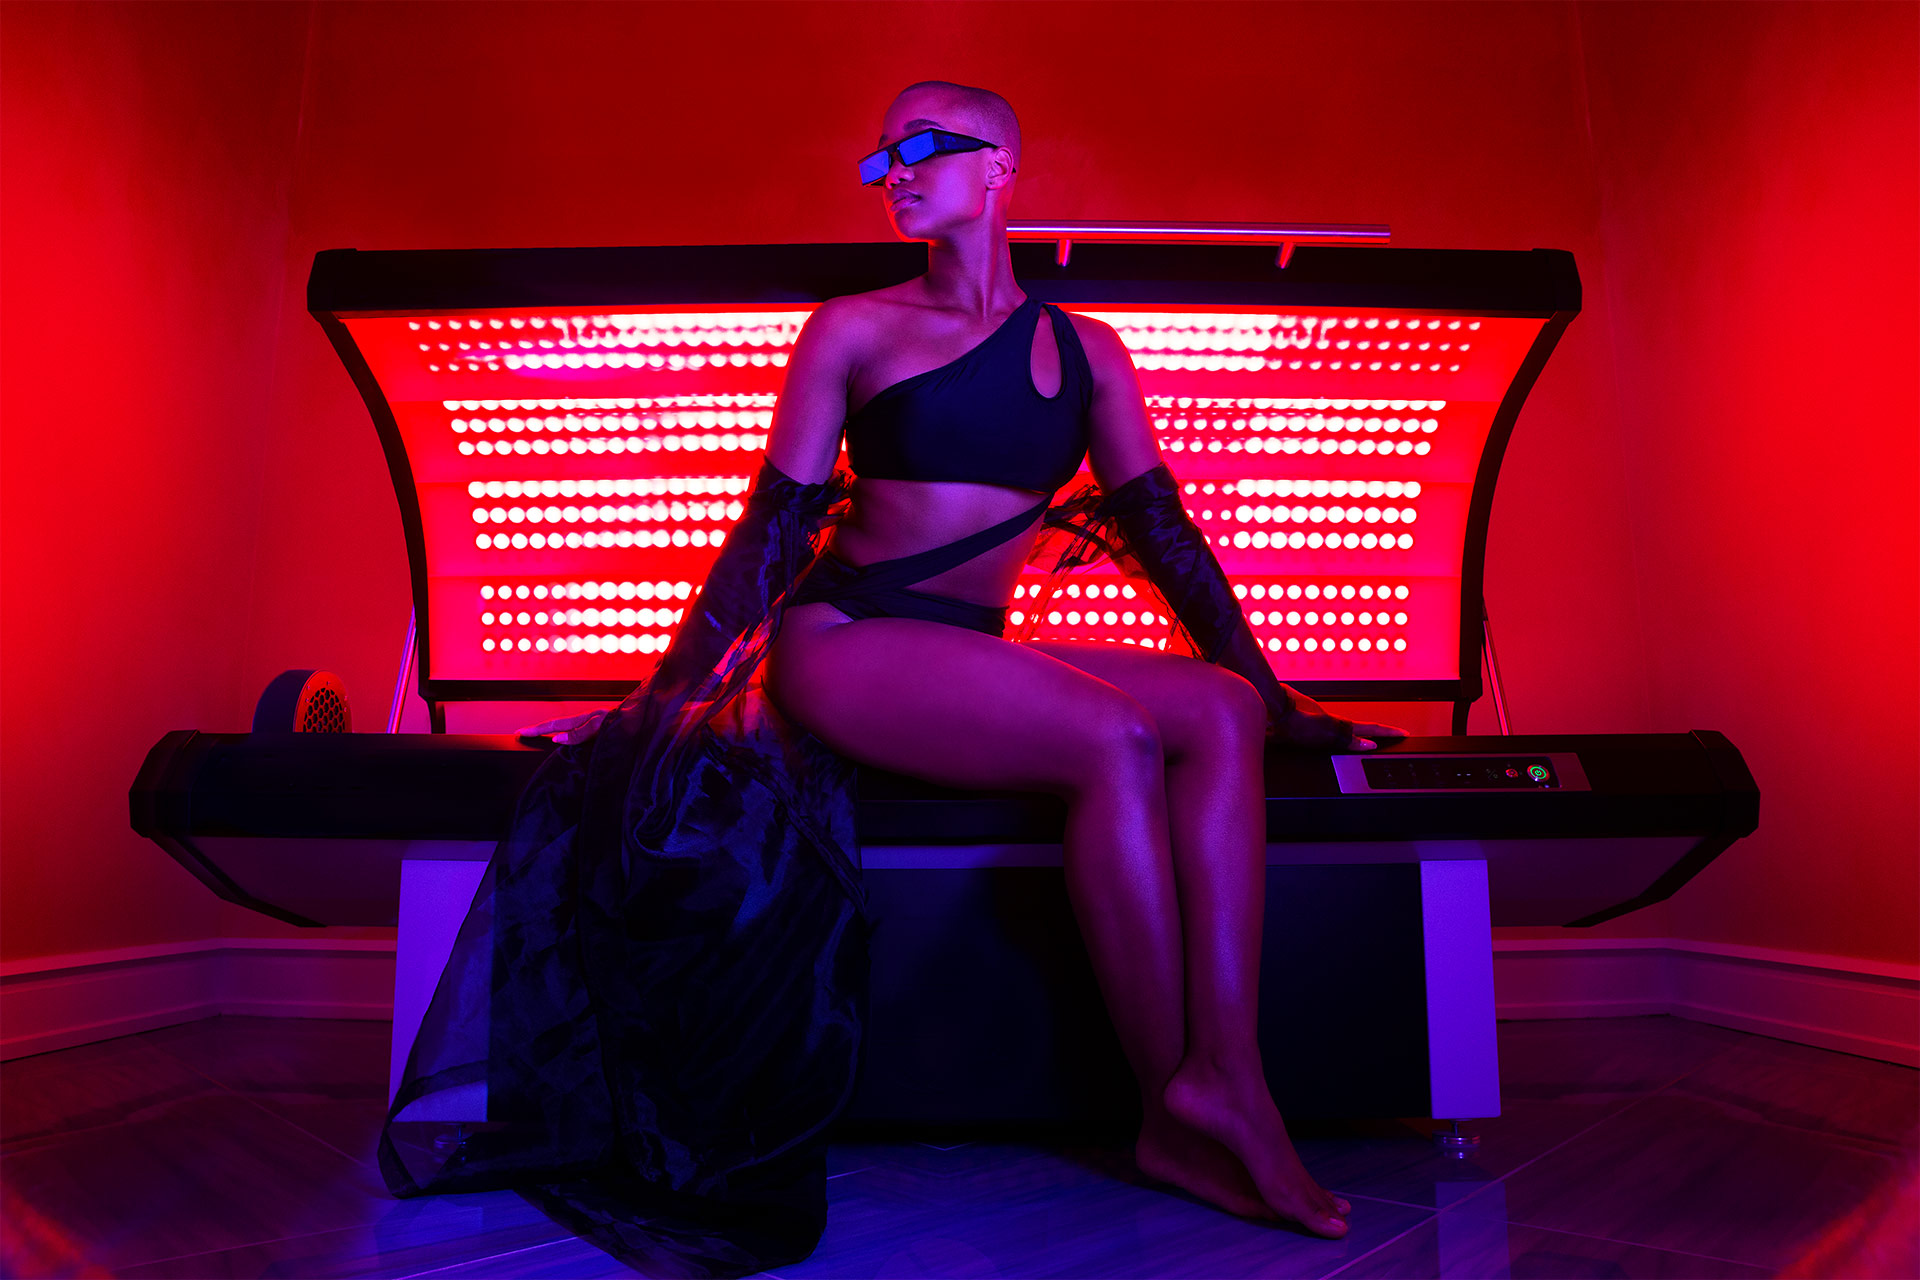 A woman in a red room sitting on top of a tanning bed with red lights within